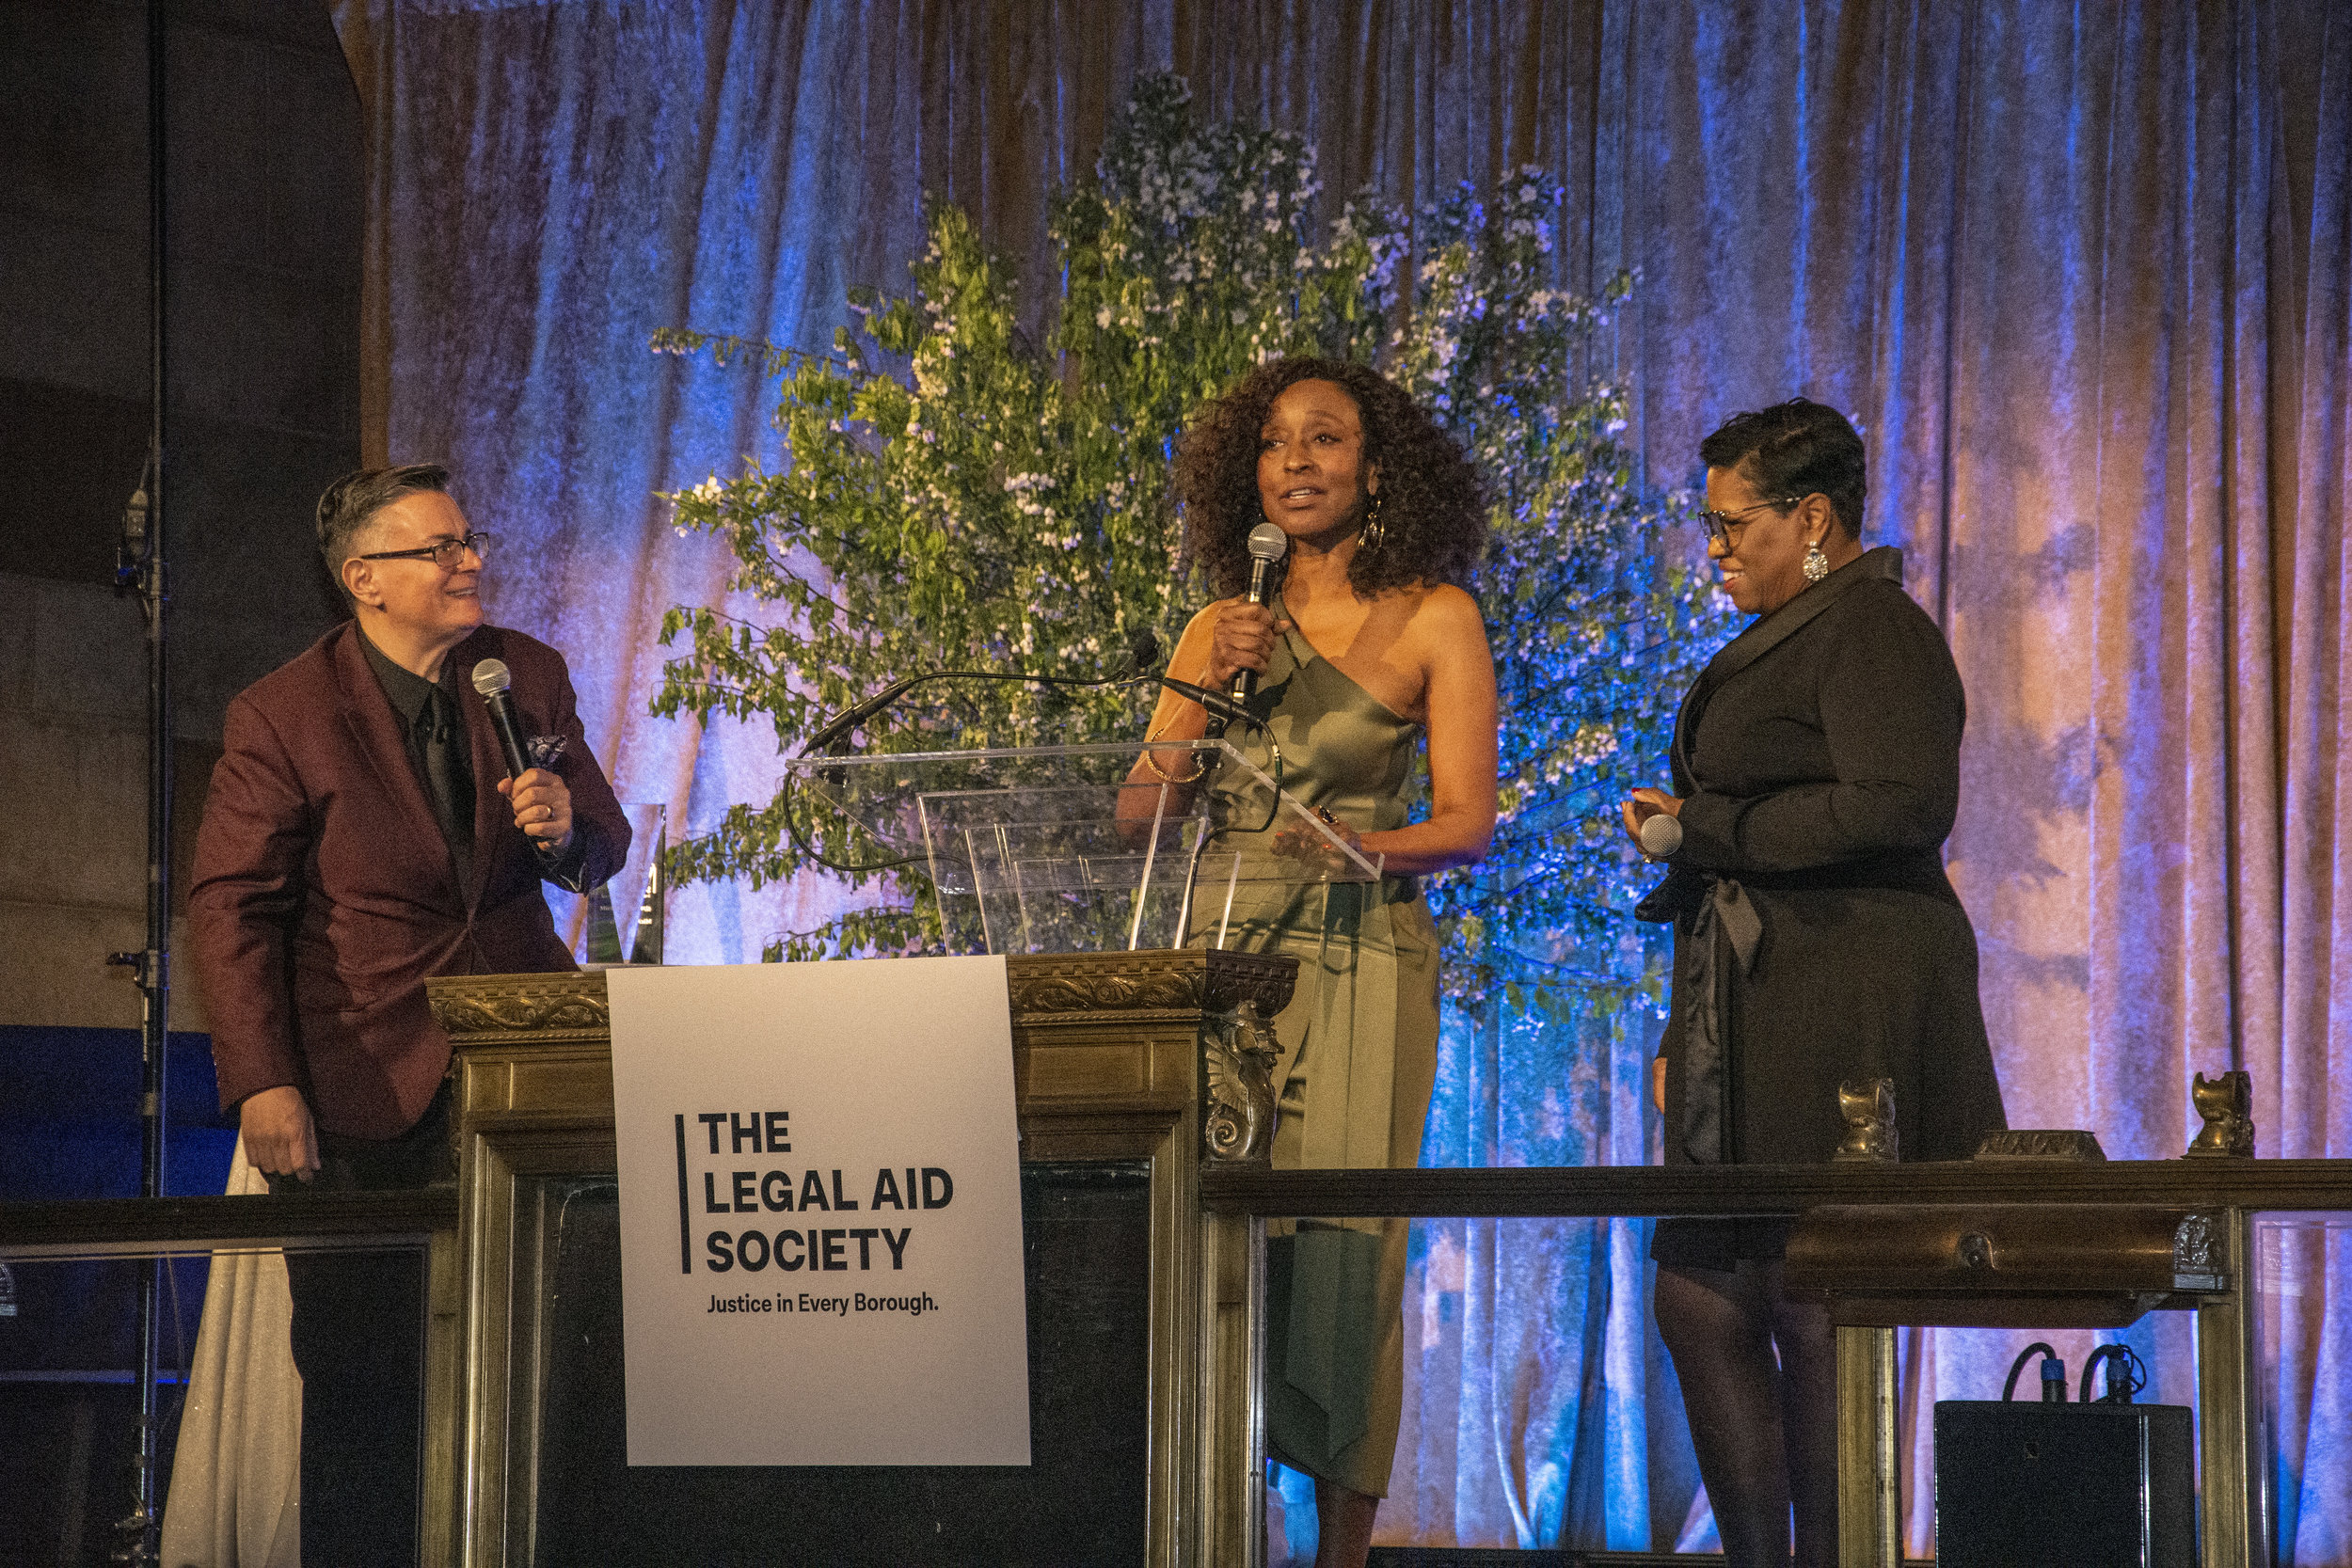 L-R: Tina Luongo, Adriene Holder, and Dawne Mitchell, Attorney's in Charge of the Criminal Defense, Civil, and Juvenile Rights Practices, engage the 700+ attendees during the Live Auction.